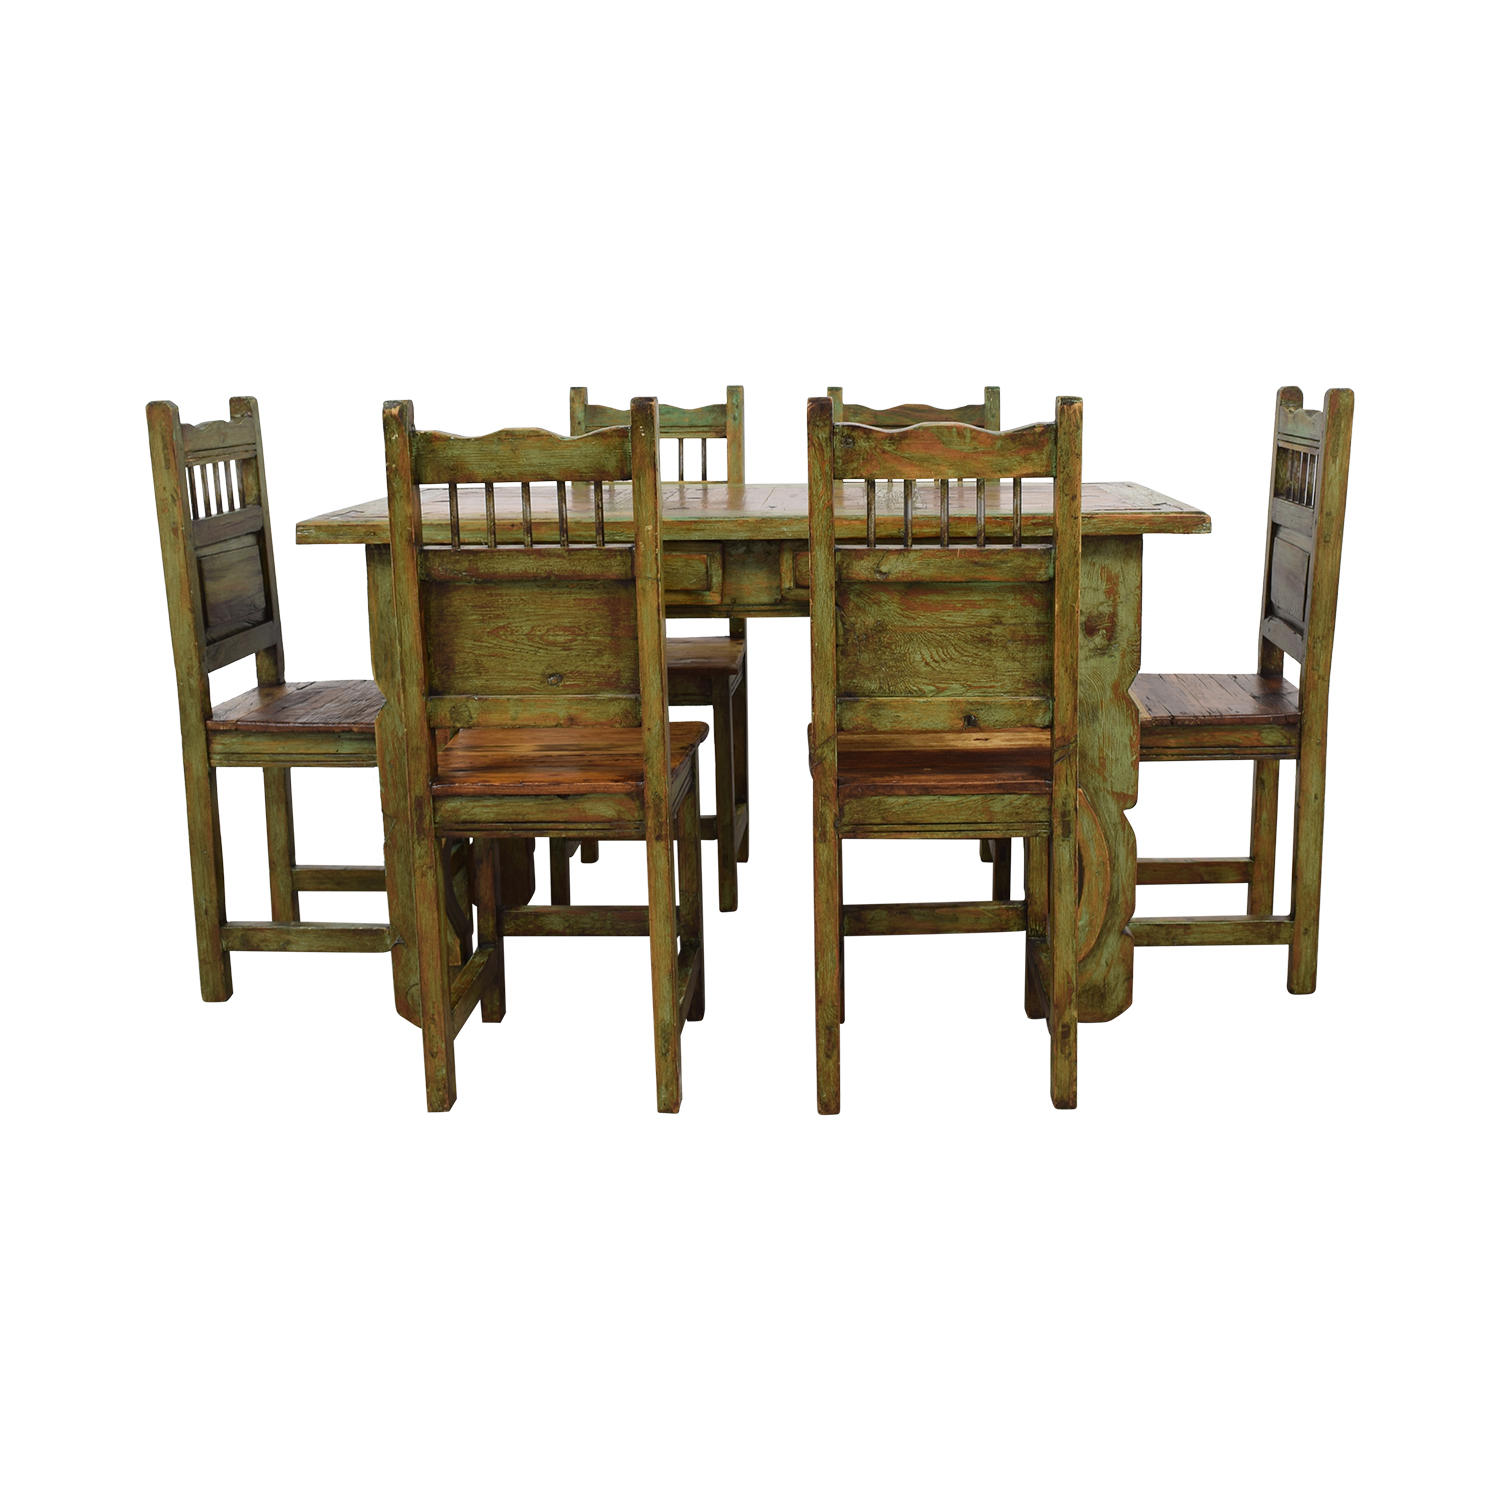 El Barzon El Barzon Southwest Rustic Recycled Wood Dining Set nj